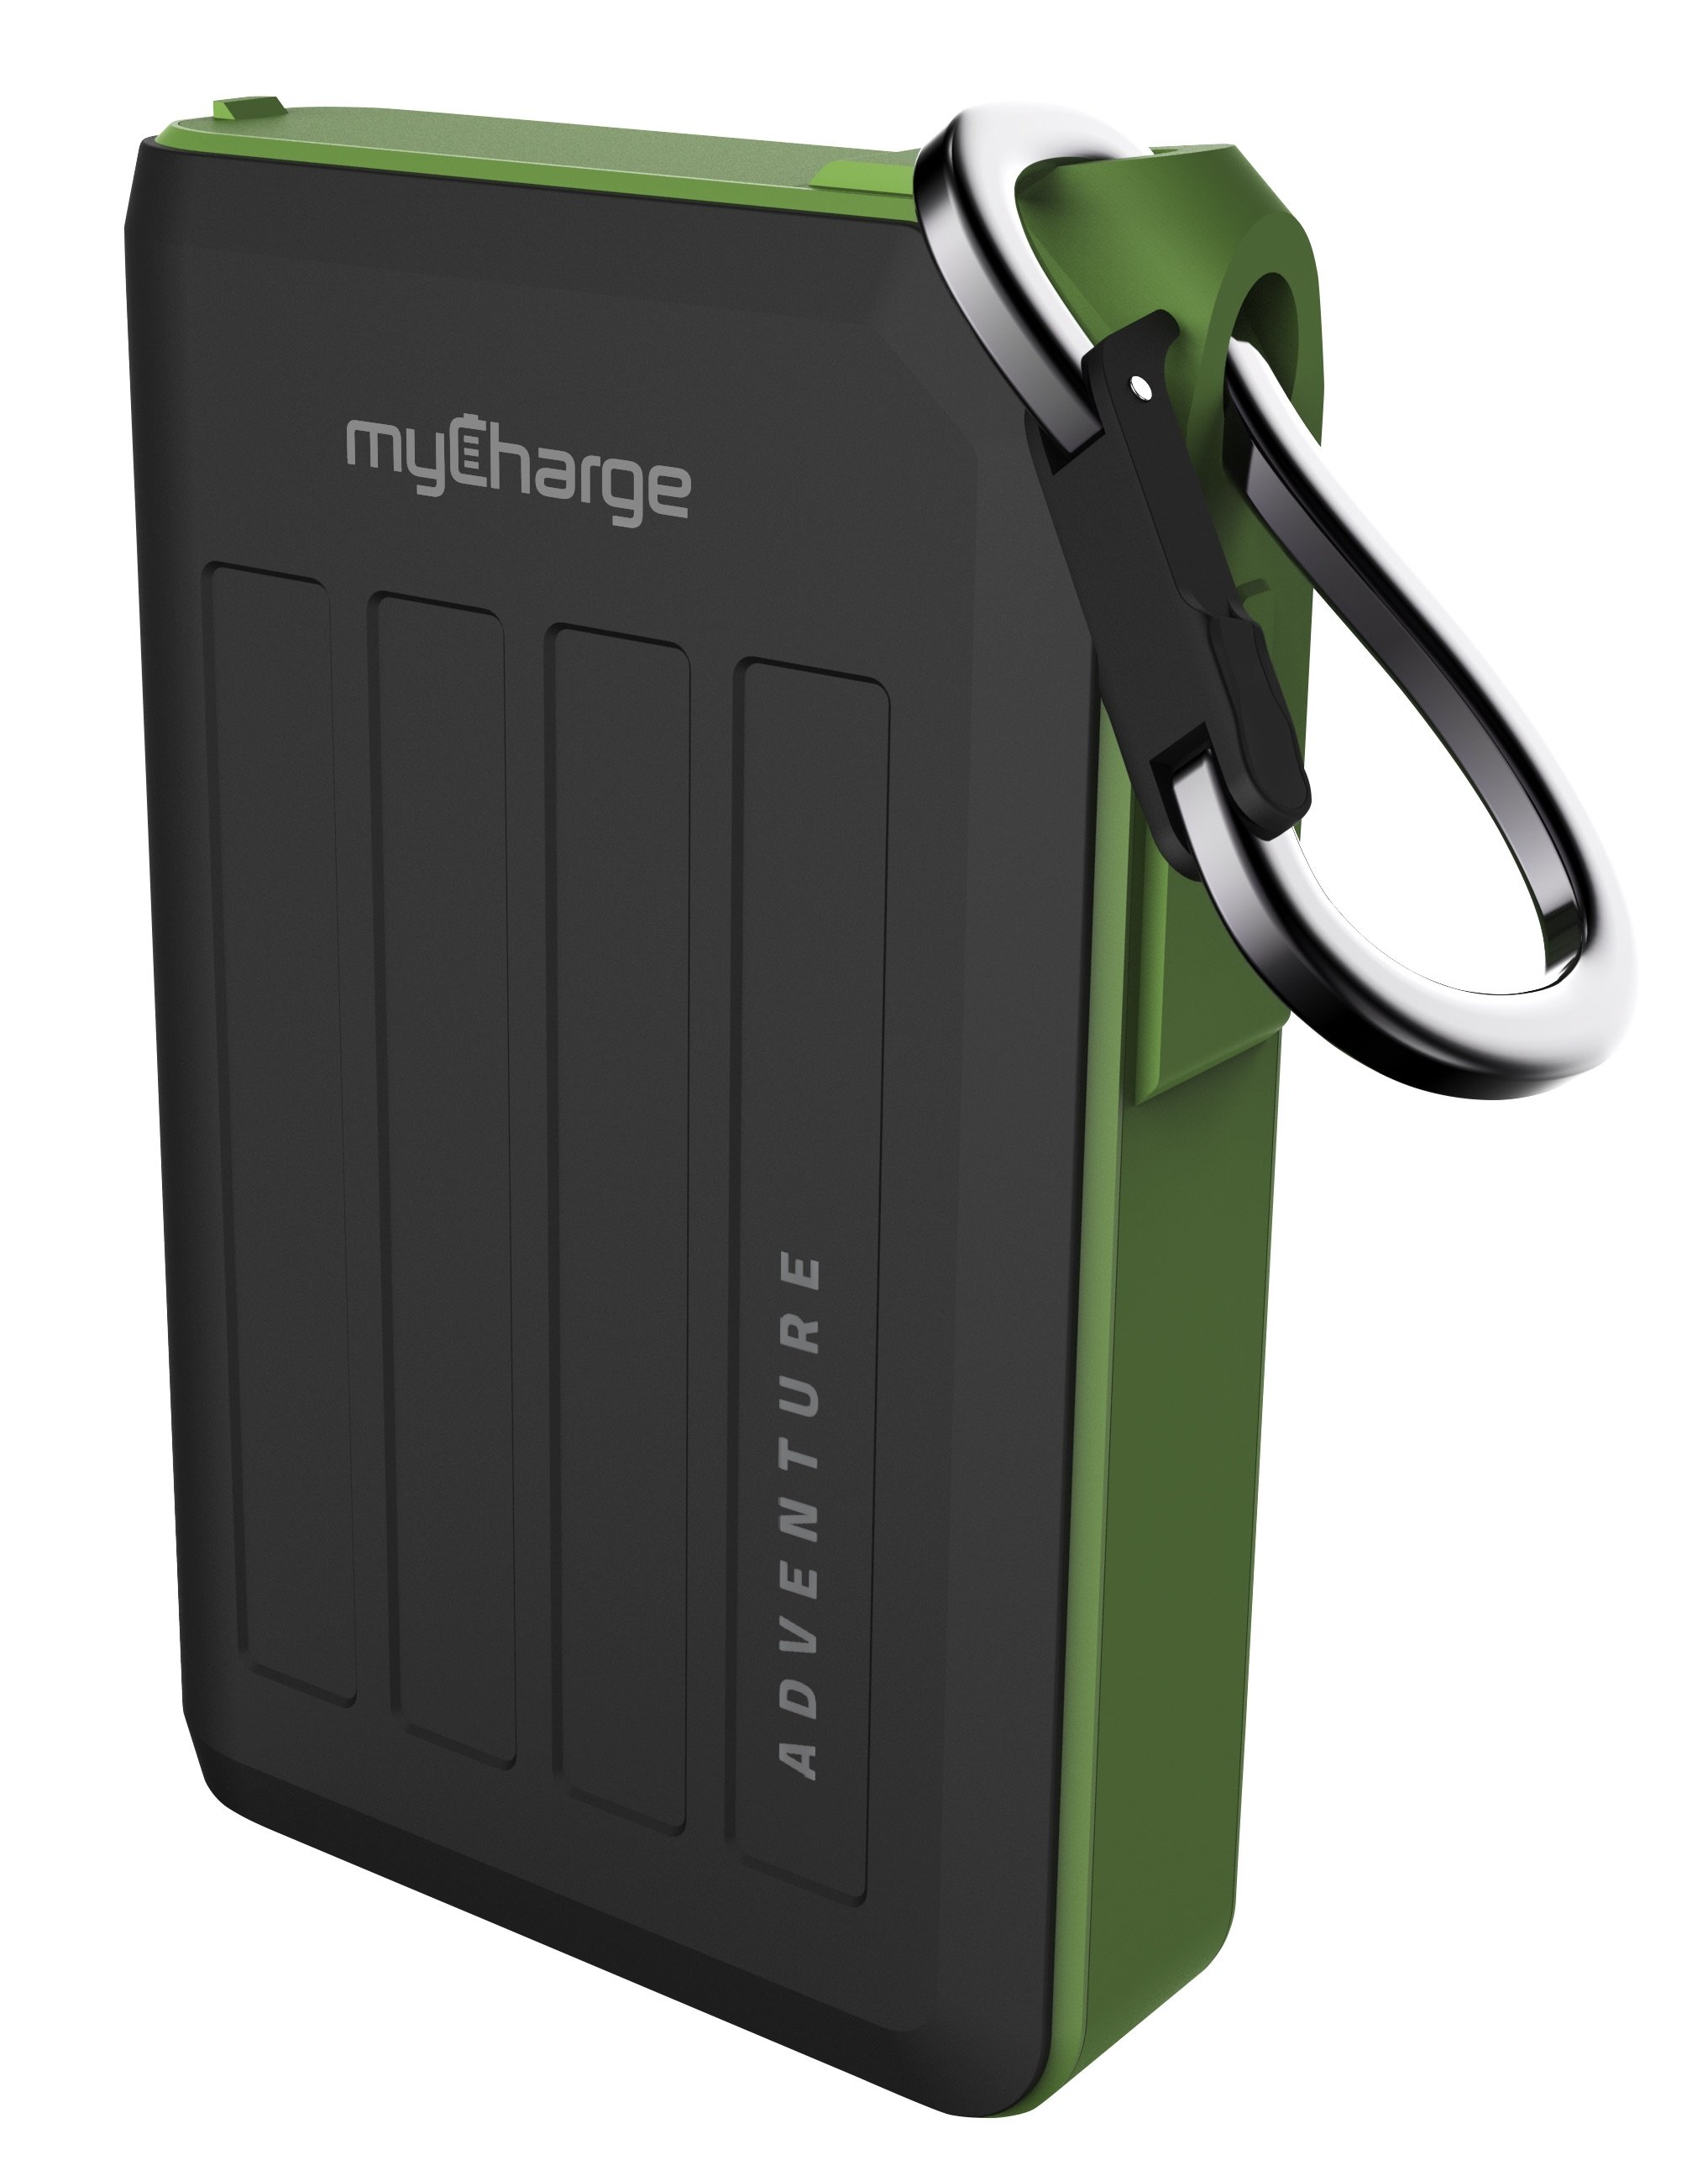 myCharge intros new portable charging solutions for 2017